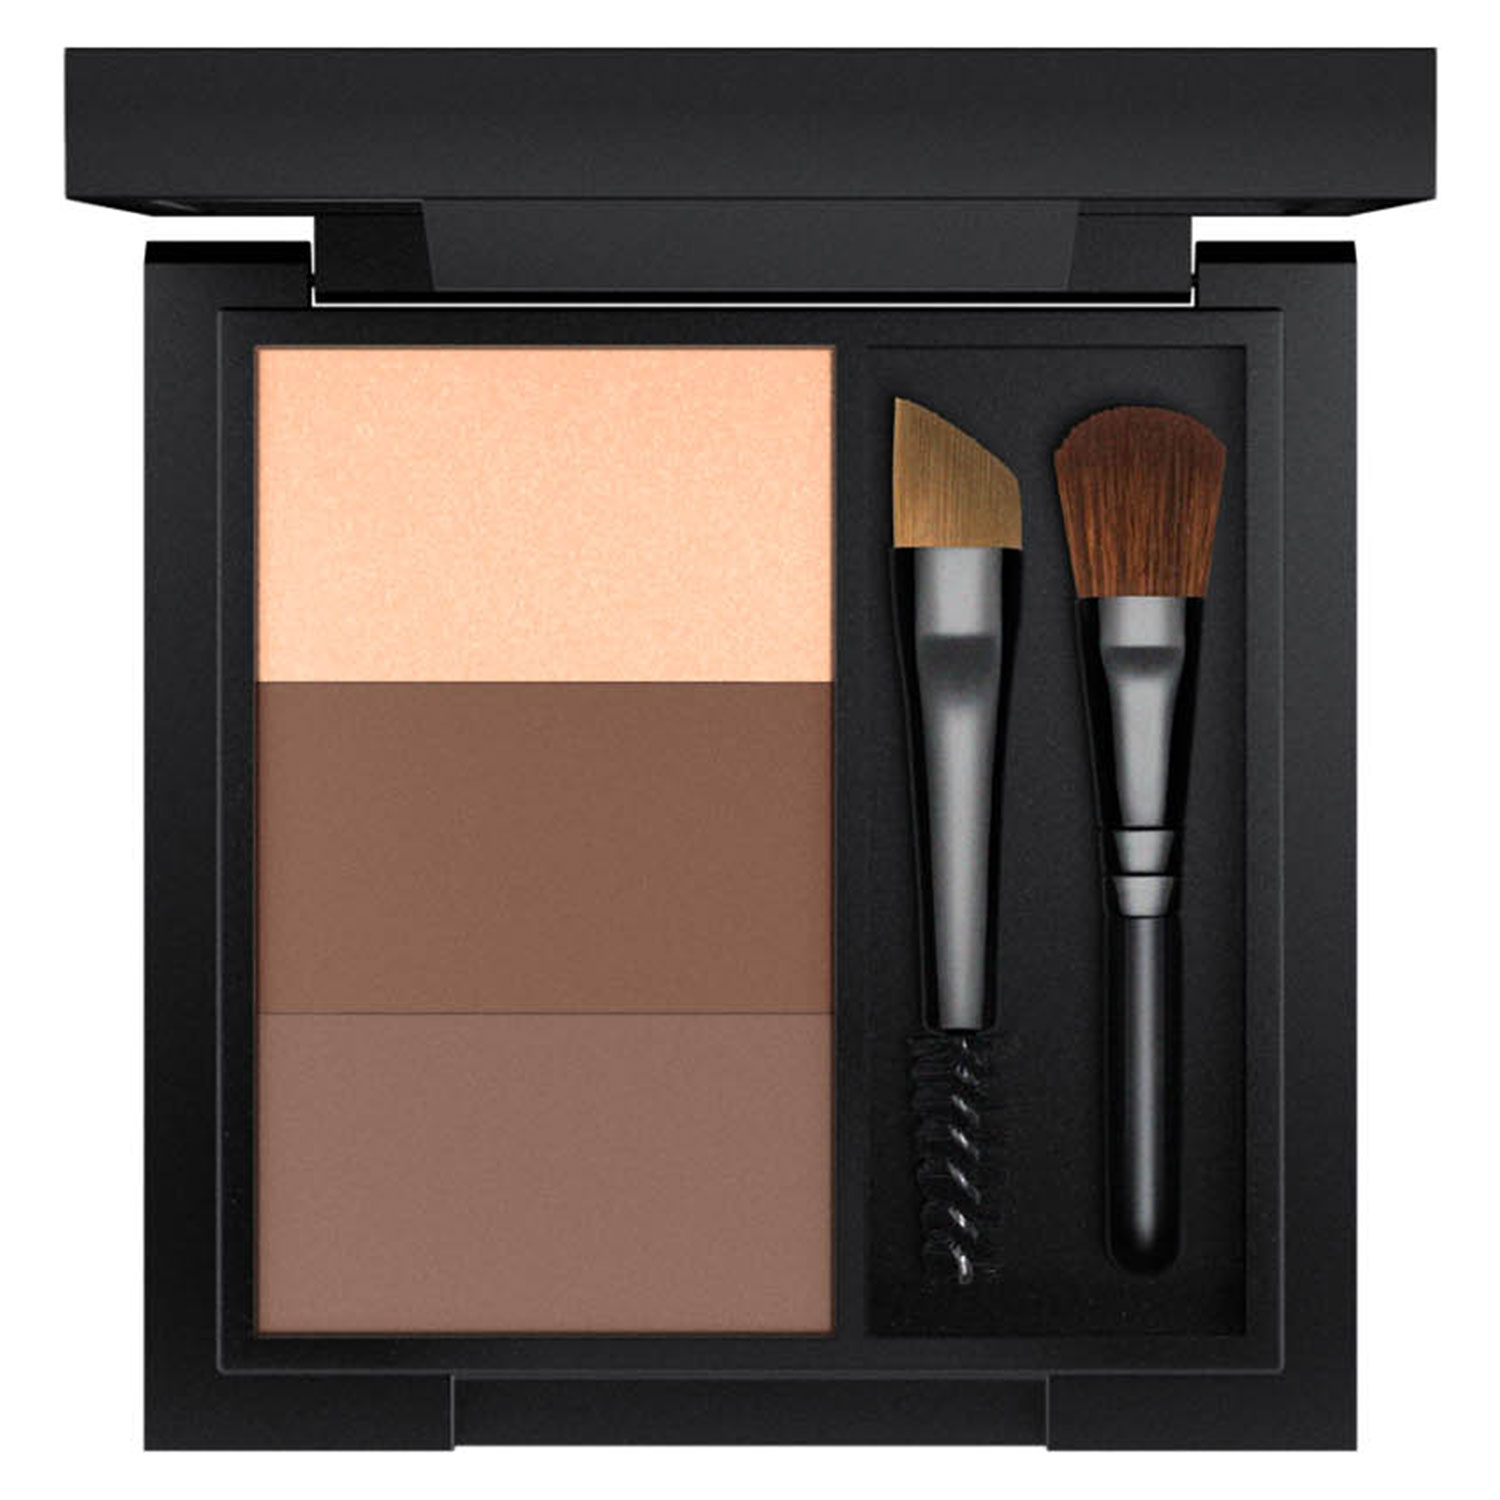 Great Brows - All-In-One Brow Kit Lingering